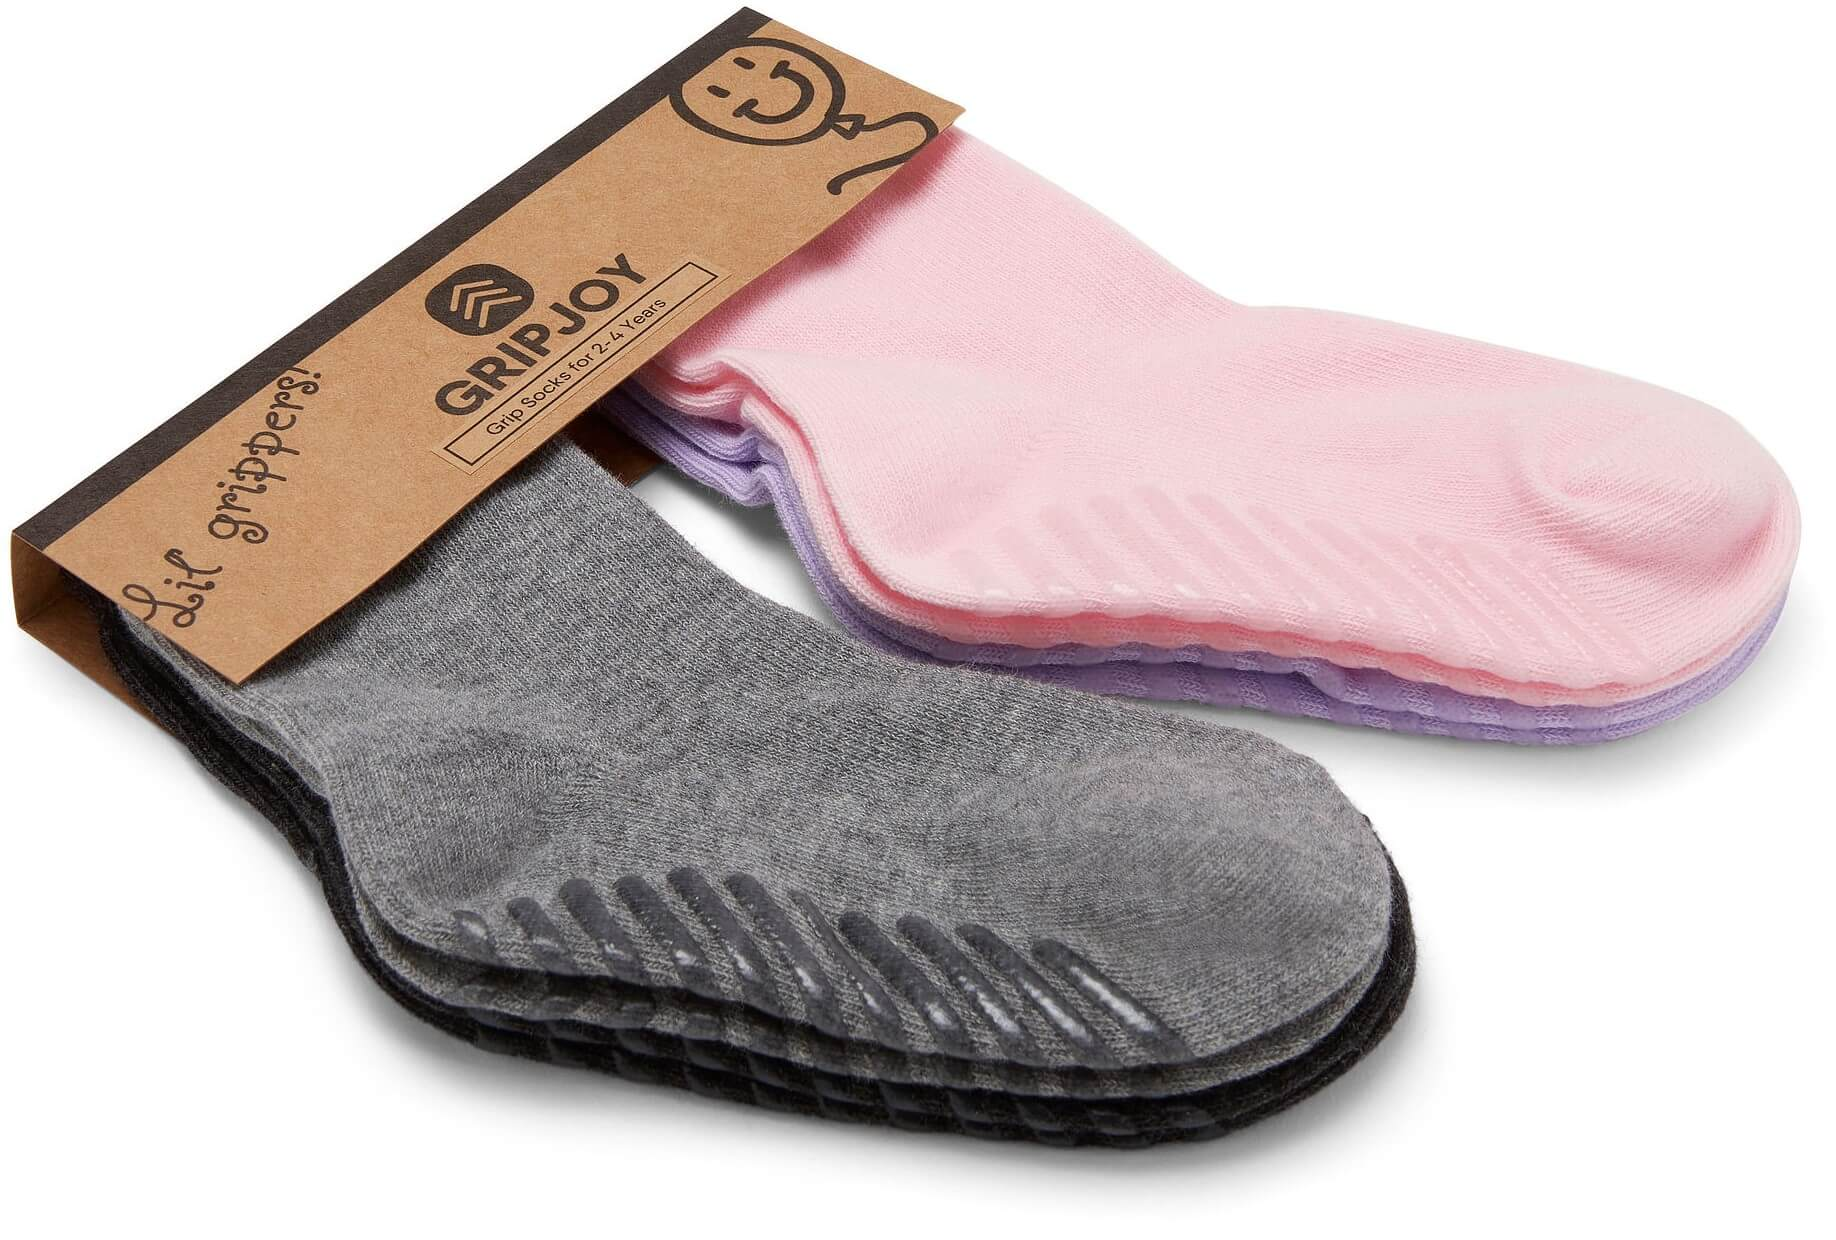 Gripjoy 2-4 Years Girls Toddler Socks with Grips Purple Pink & Greys 4-Pack - Gripjoy Socks